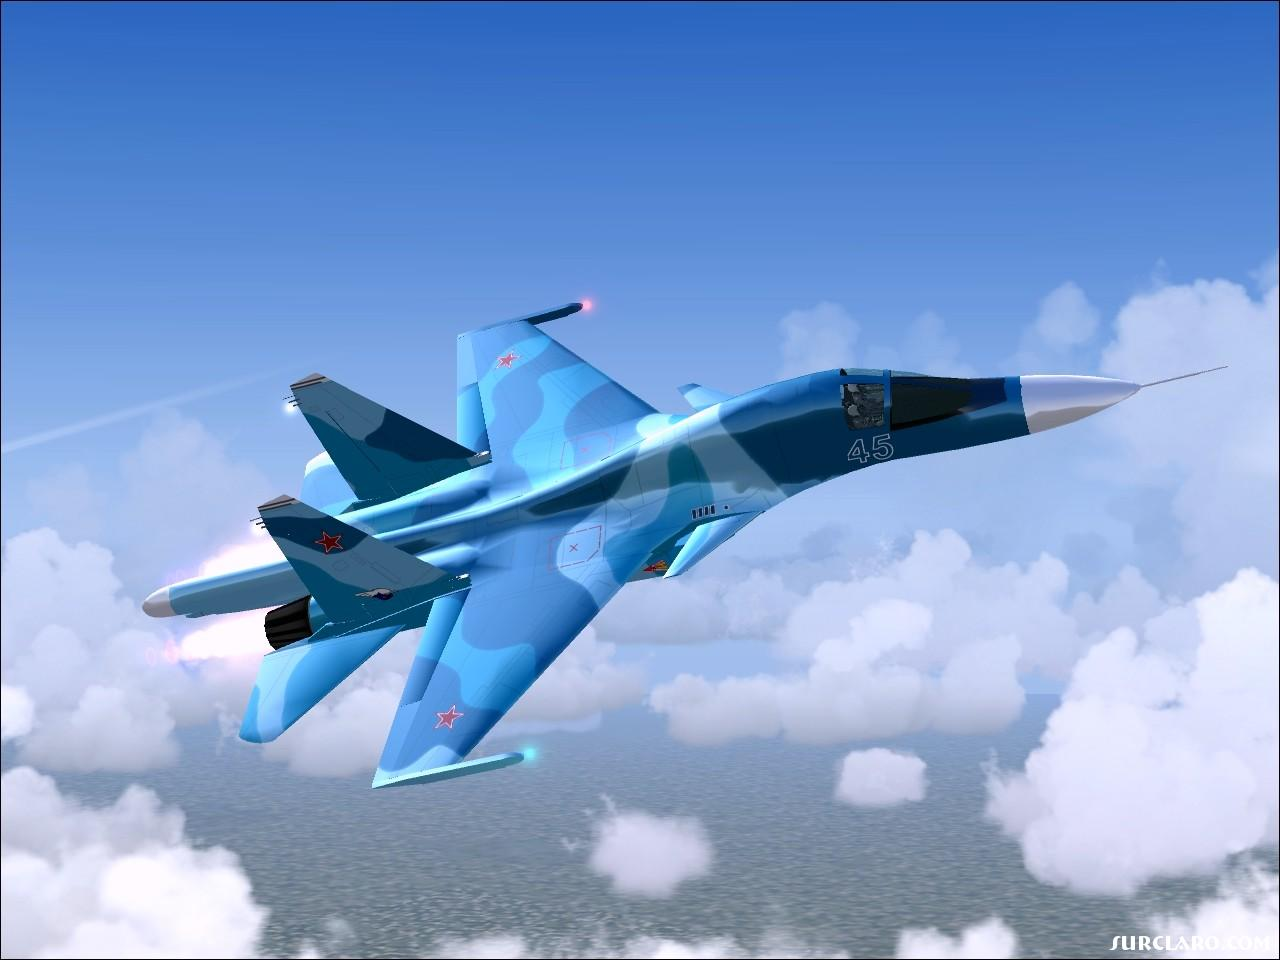 new russian military aircraft with Photo7422 on Mig 25 Abu Foxbat additionally Pic Detail as well Pic Detail furthermore Pak Ta besides The Importance Of The E 8 Jstars And Its Possible Successor.